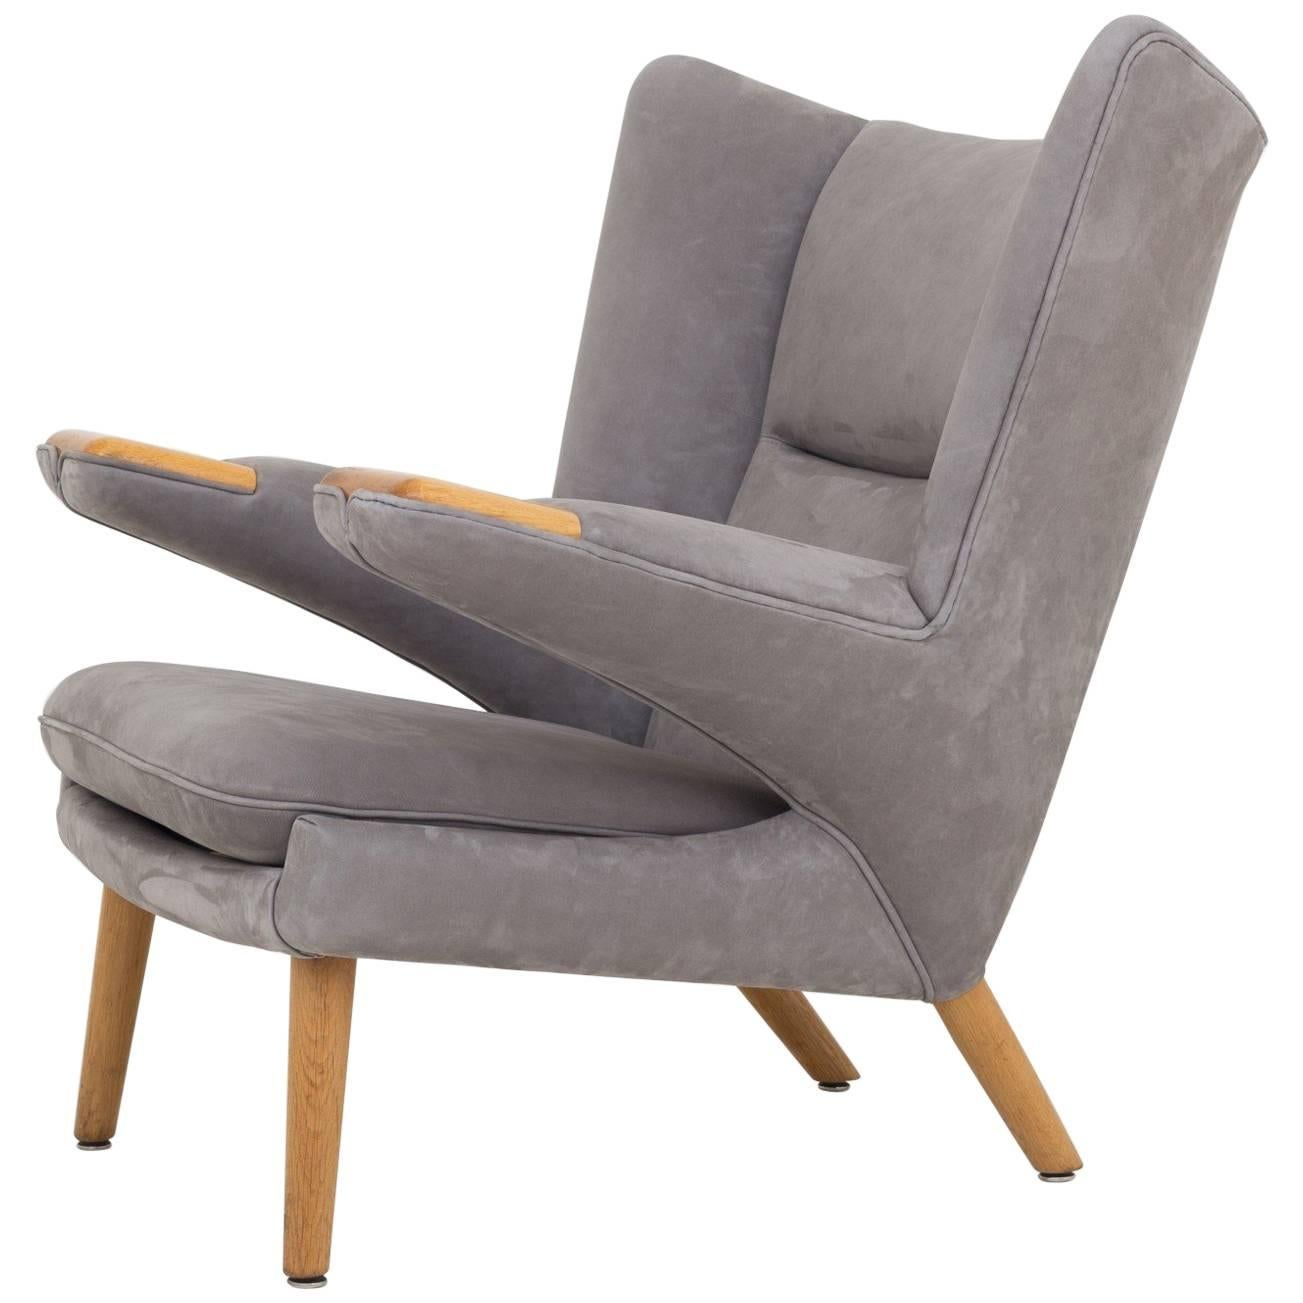 AP 69 Mega Papa Bear Chair by Hans J. Wegner.